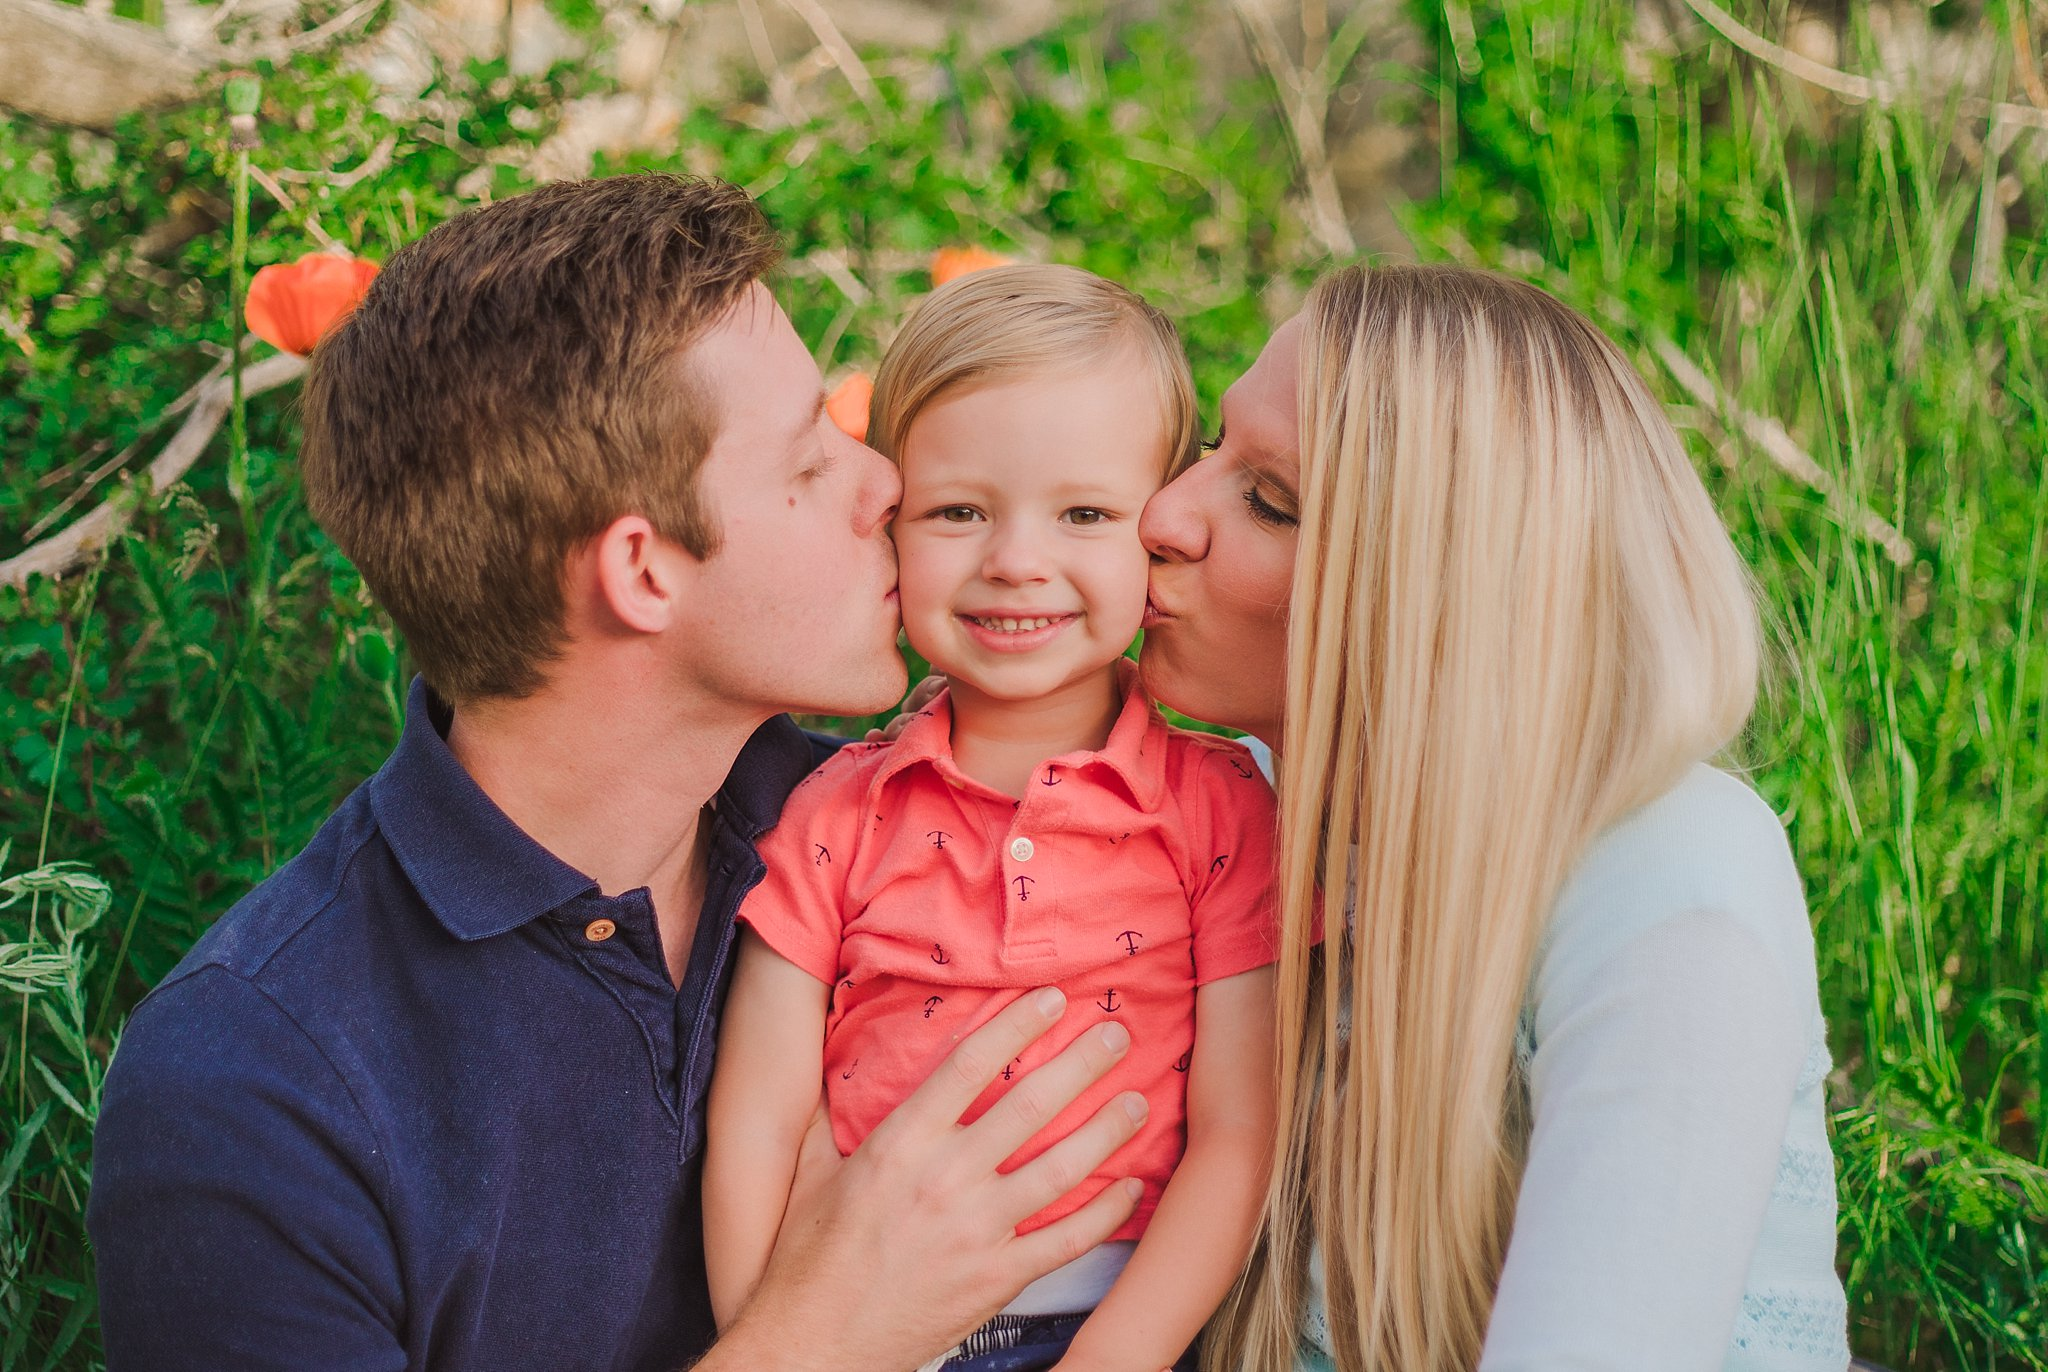 family,hilary gardiner photography,salt lake city family photographer,salt lake city family photography,salt lake city photographer,utah valley family photographer,